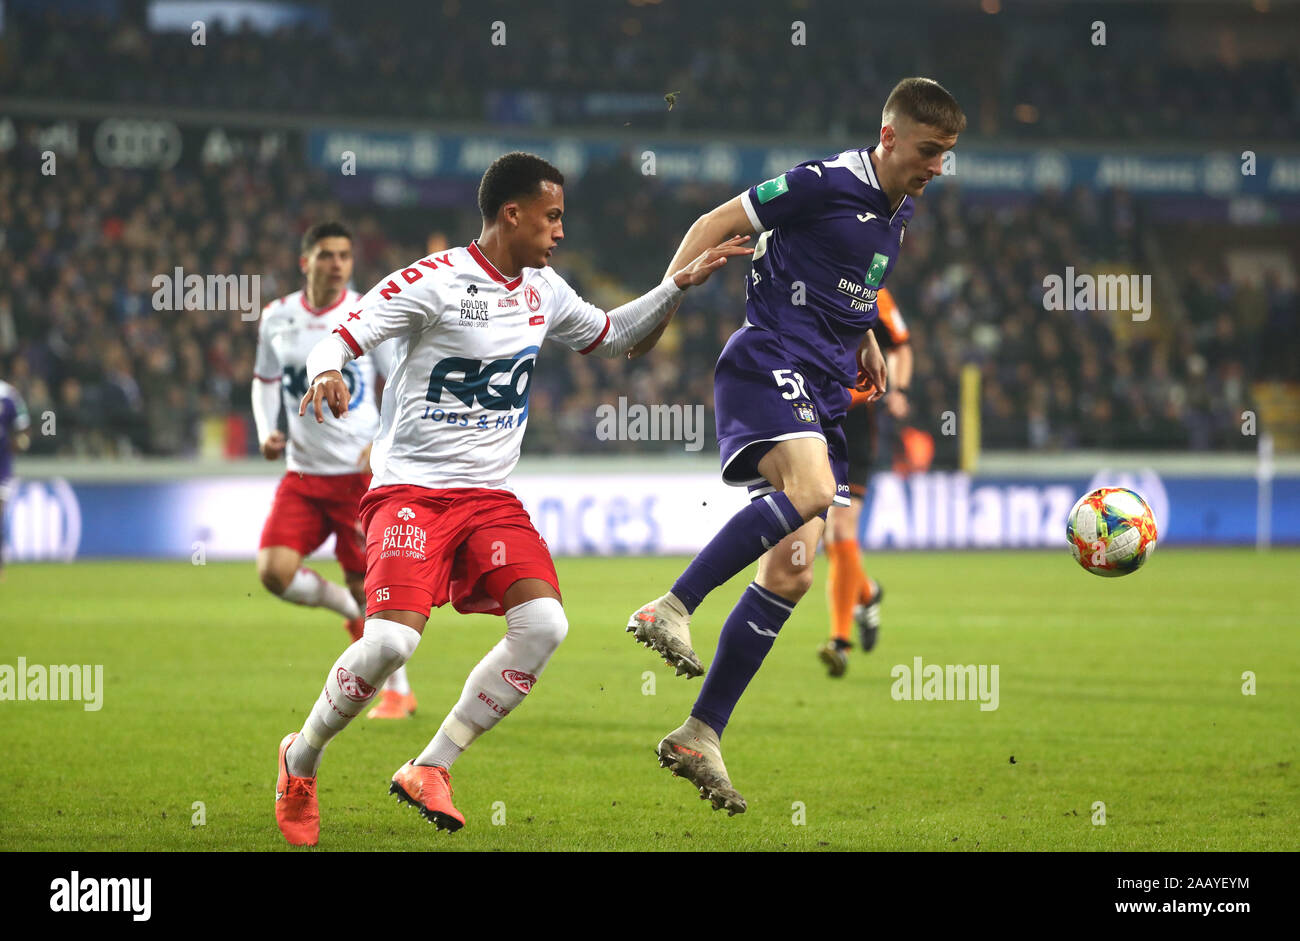 BRUSSELS, BELGIUM - NOVEMBER 24: Alexis Saelemaekers of Anderlecht battles for the ball with Lucas Tuta of Kv Kortrijk during the Jupiler Pro League match day 16 between RSC Anderlecht and KV Kortrijk on November 24, 2019 in Brussels, Belgium. (Photo by V Credit: Pro Shots/Alamy Live News Stock Photo